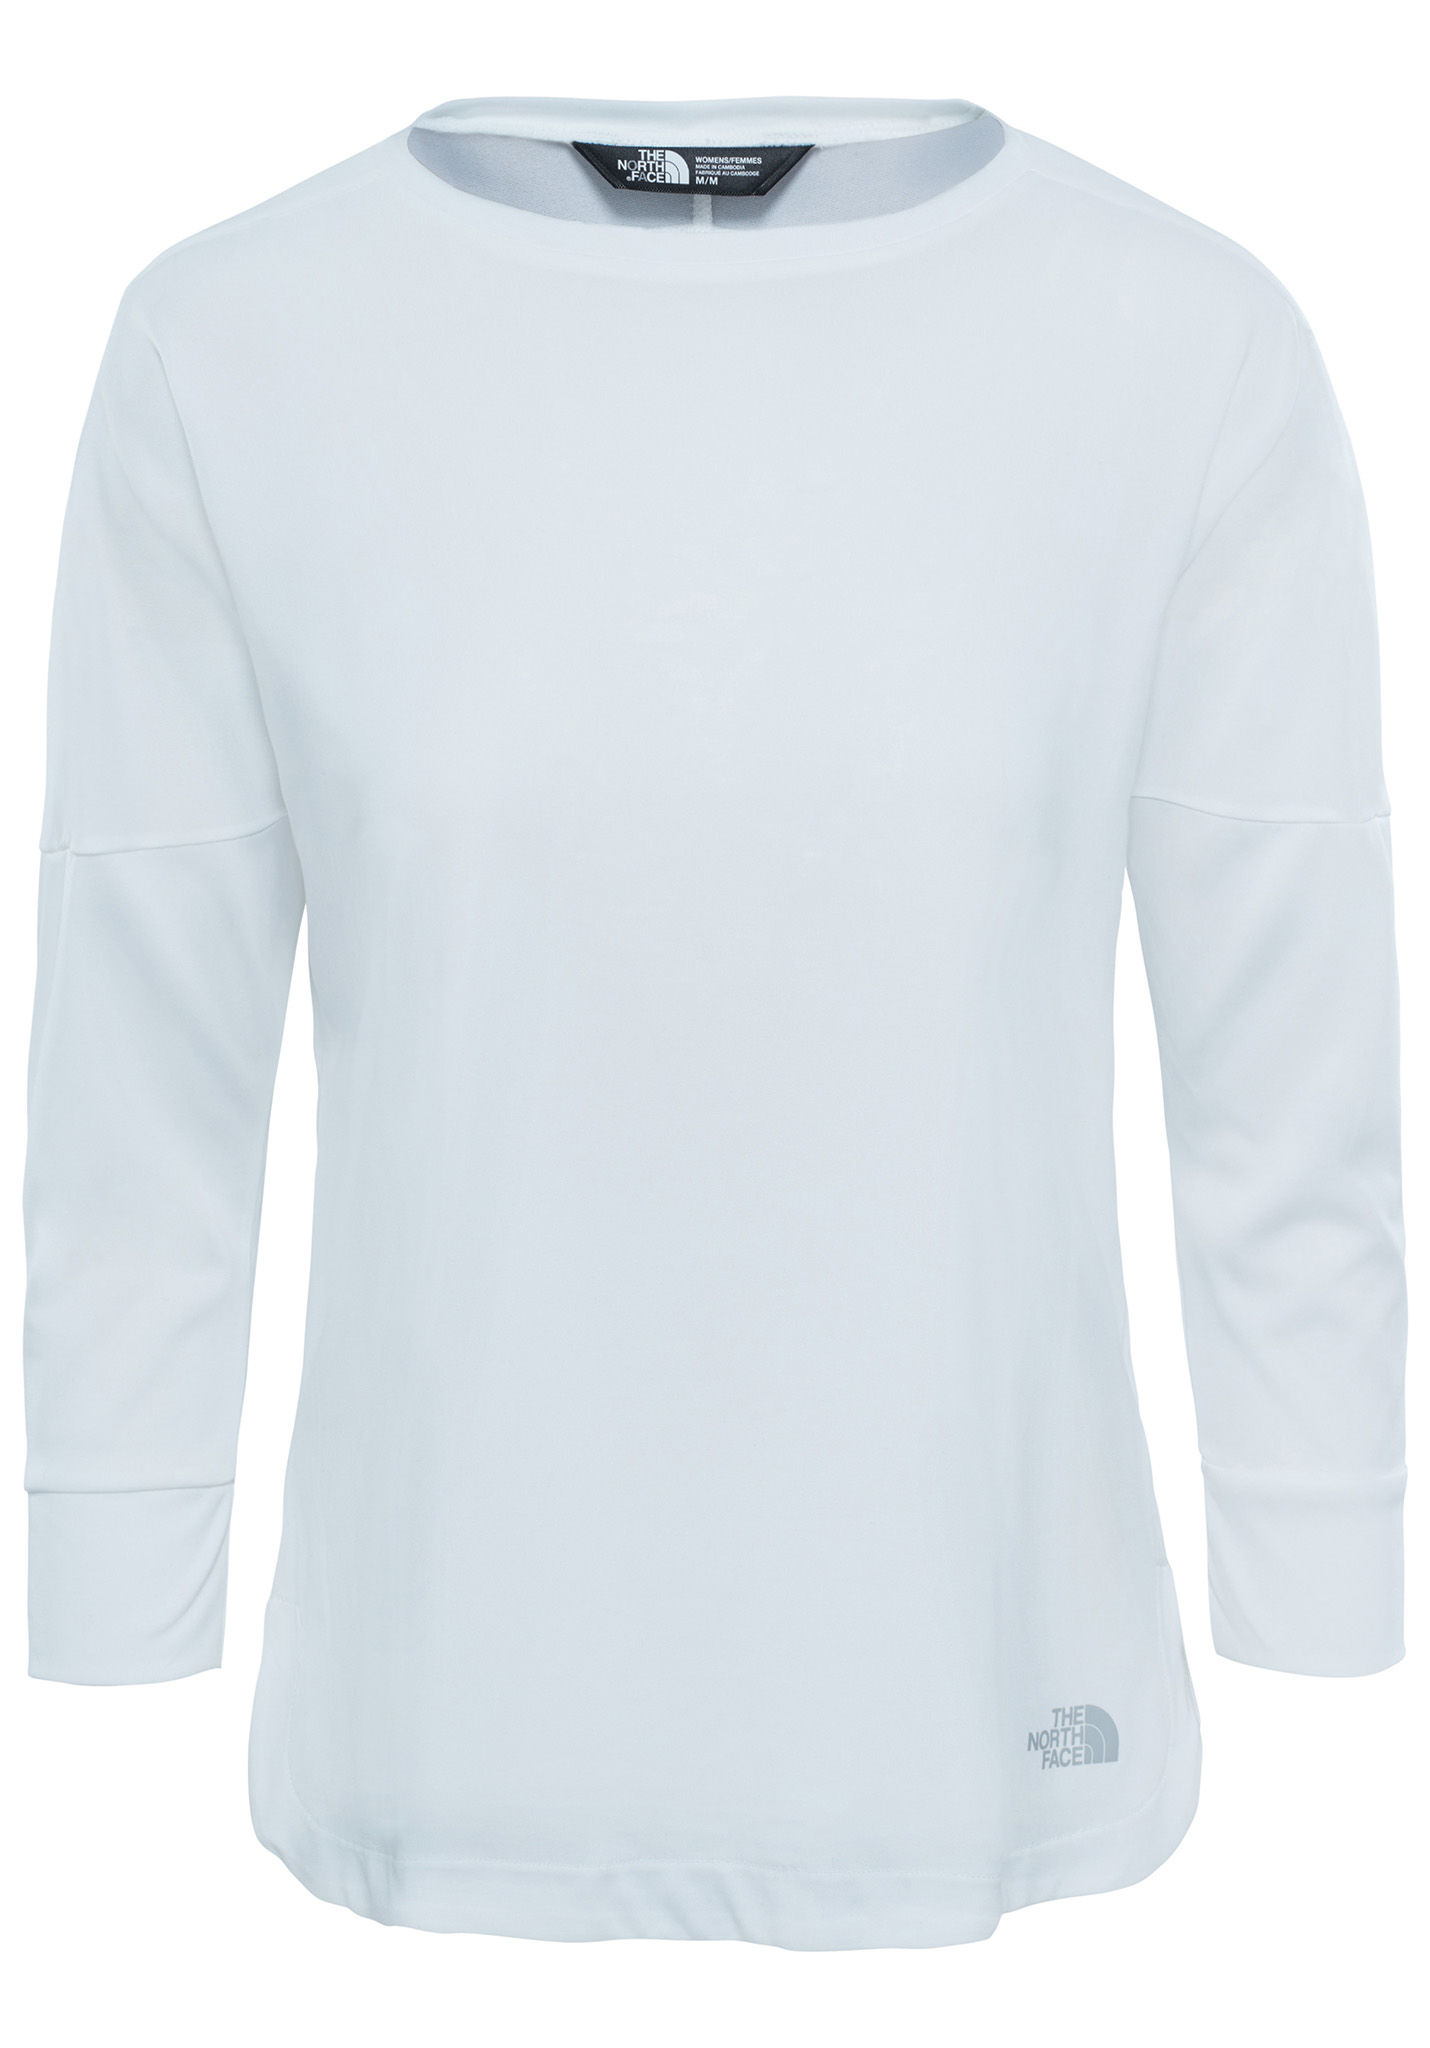 b08369e3e6ca9 THE NORTH FACE Inlux 3 4 - Long-sleeved Shirt for Women - White - Planet  Sports